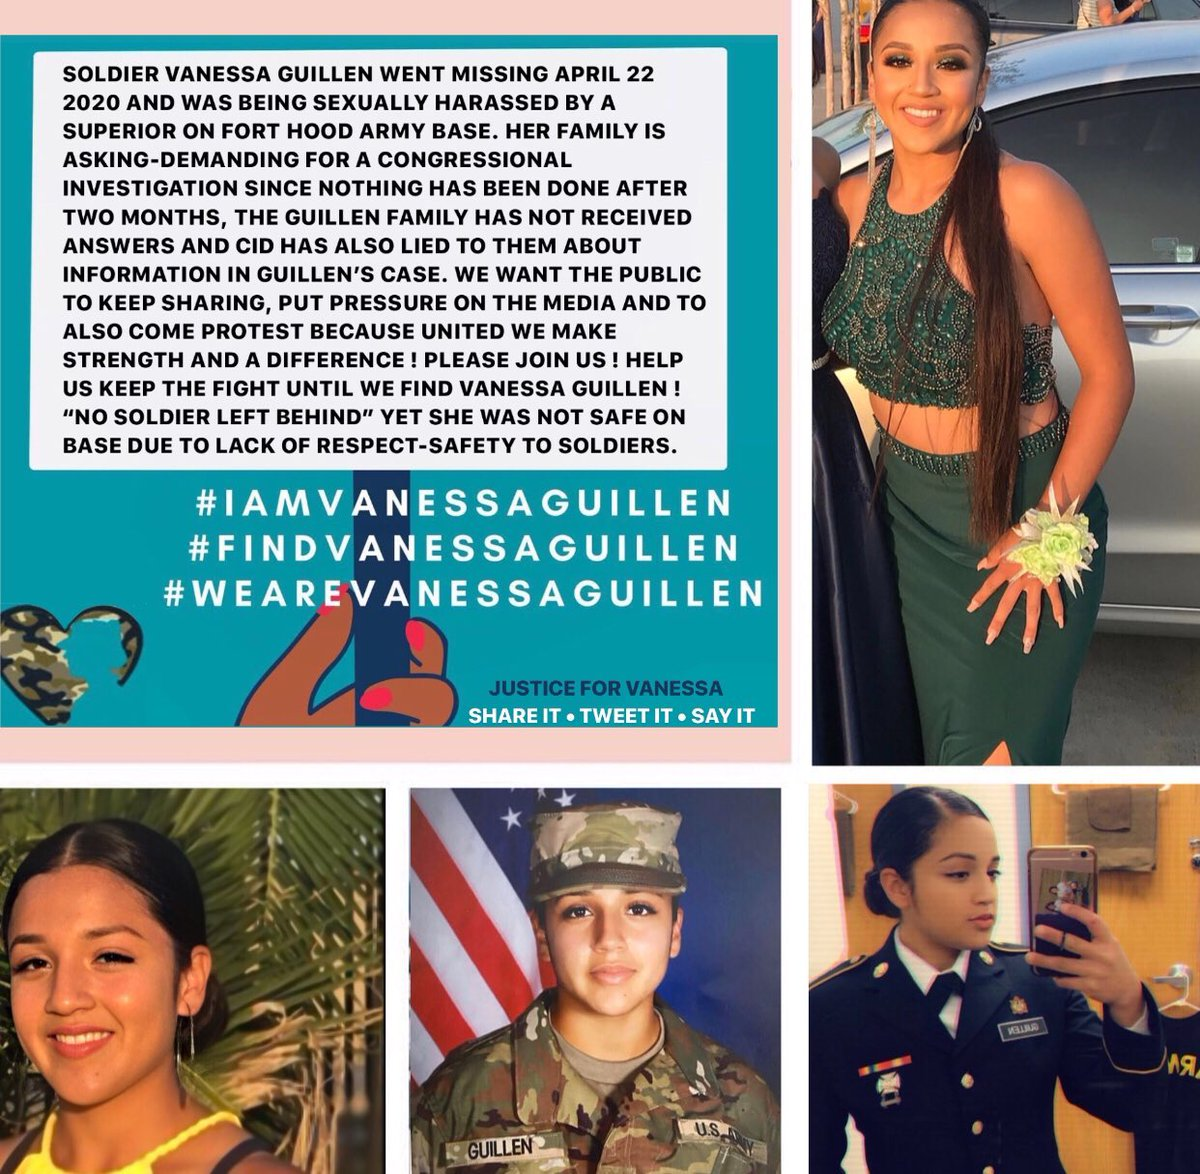 """PLEASE KEEP SHARING ! THEY SAY """"NO SOLDIER LEFT BEHIND"""" YET VANESSA WAS NOT SAFE ! WE WILL NOT STOP UNTIL WE FIND VANESSA GUILLEN, SAY HER NAME ! SIGN, PROTEST, OR DONATE ! PLEASE RAISE AWARENESS ! #FindVanessaGuillen  #IamVanessaGuillen  #JusticeForVanessa  #WeAreVanessaGuillen"""